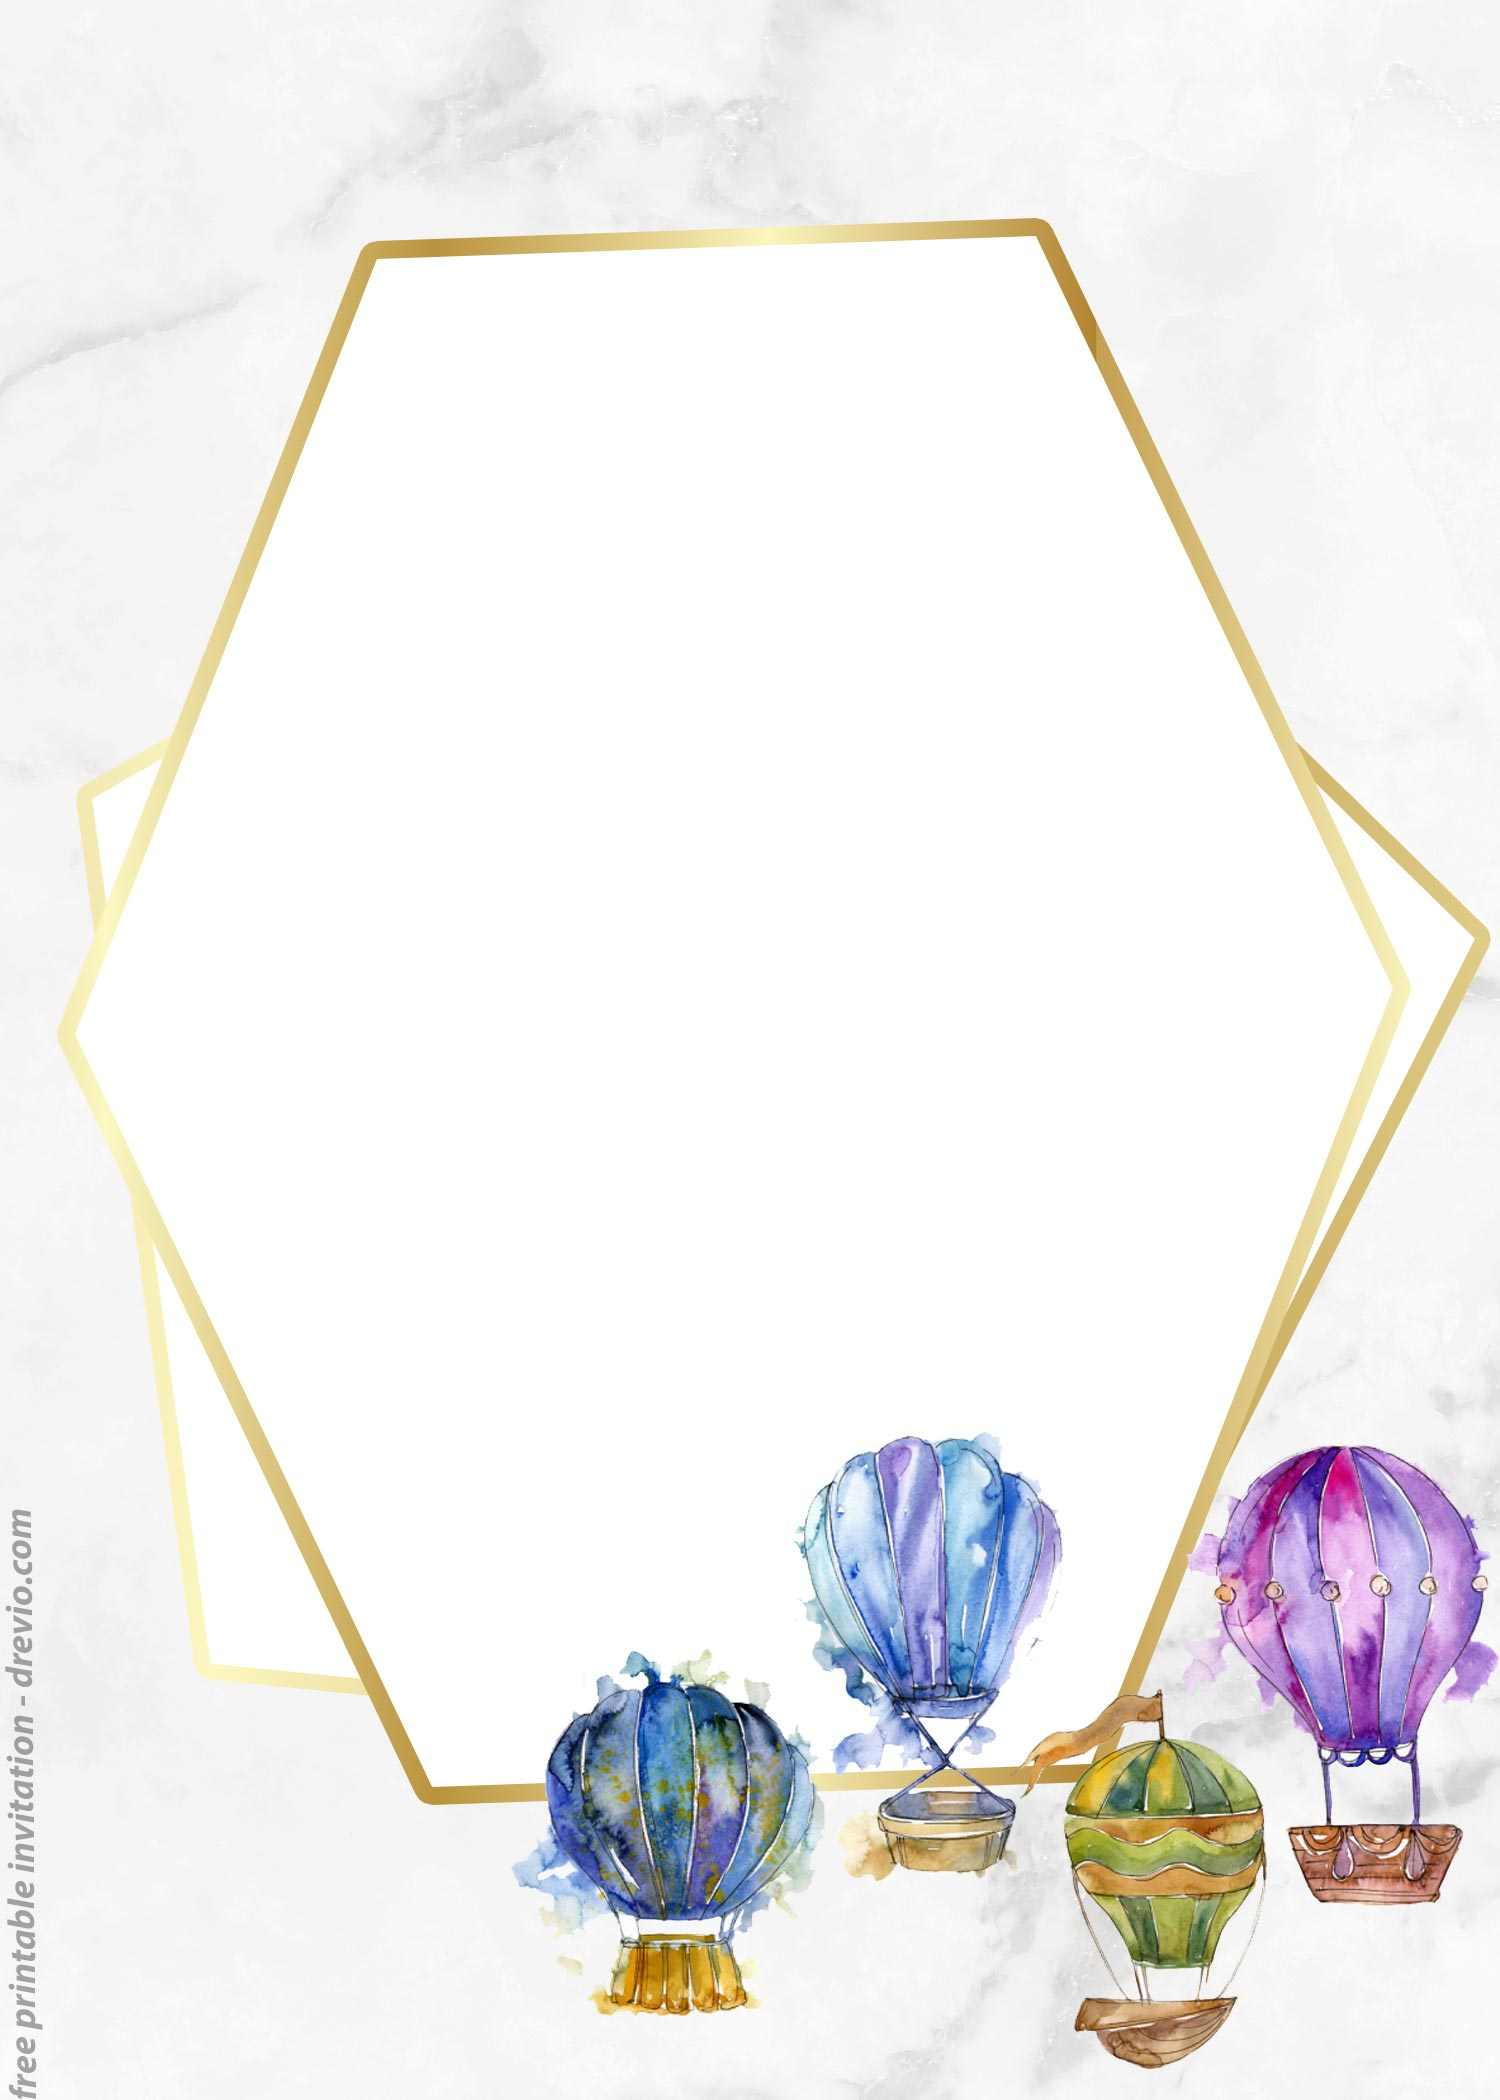 photo about Oh the Places You'll Go Balloon Printable Template named Absolutely free Watercolor Incredibly hot Air Balloon Classic Invitation Templates